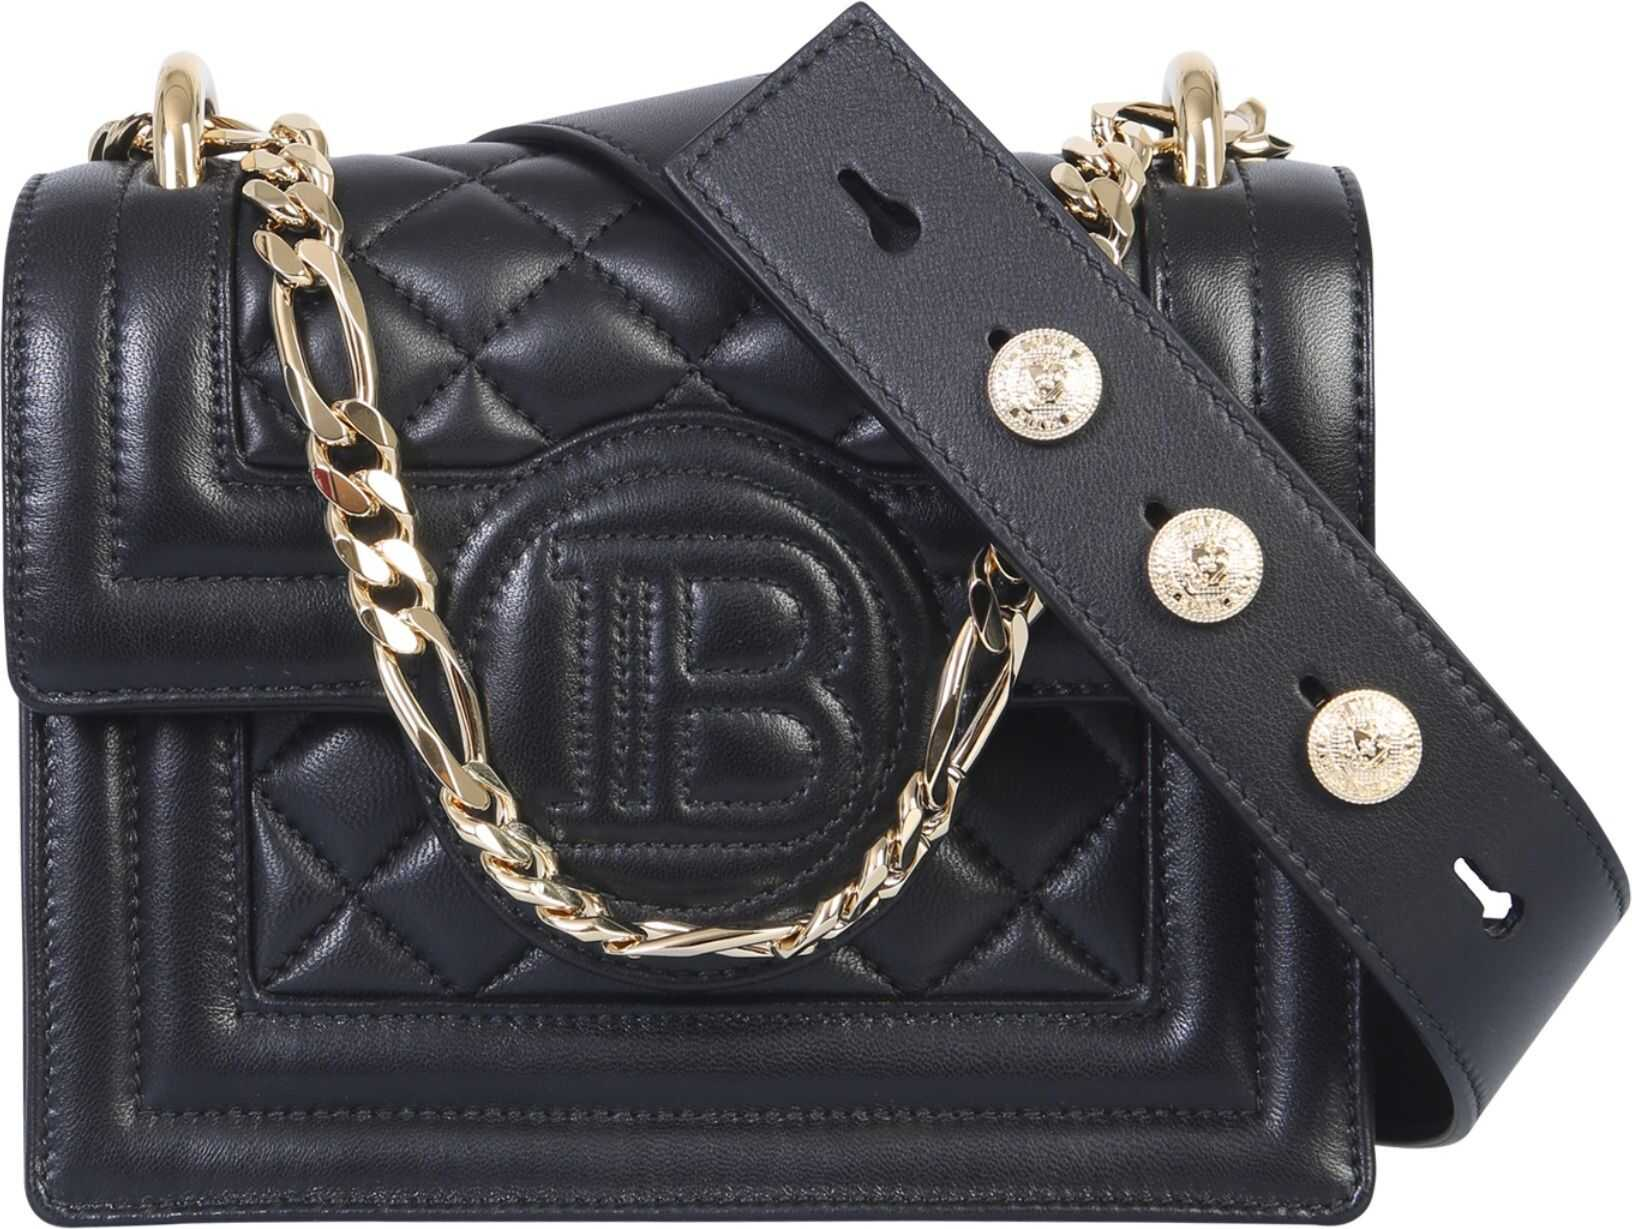 Balmain B-Bag 18 Shoulder Bag BLACK